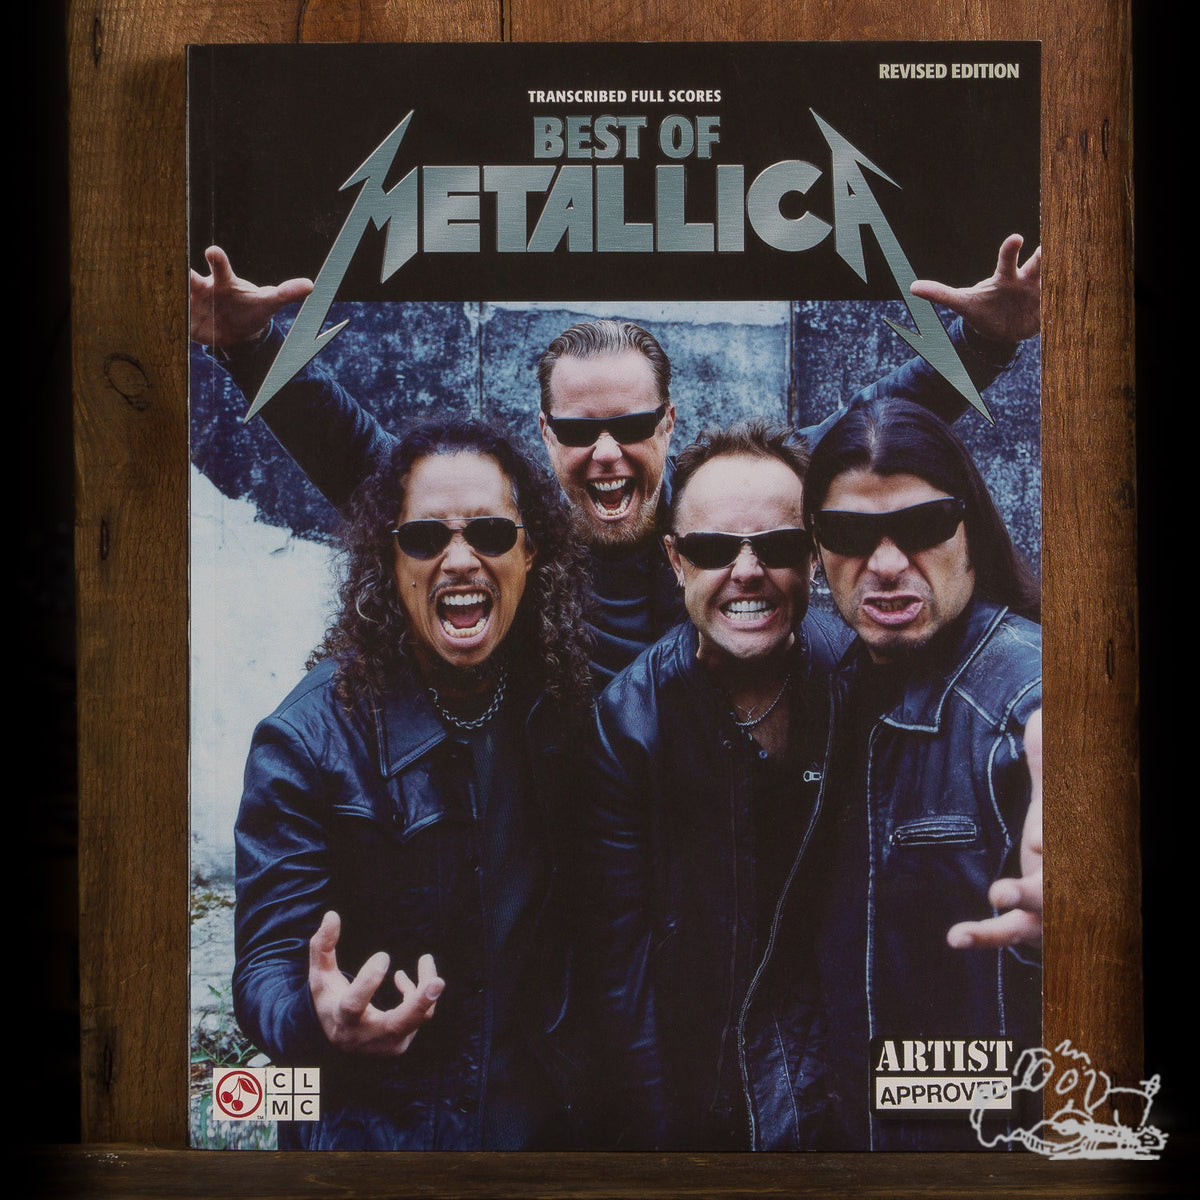 Best of Metallica - Revised Edition; Transcribed Full Scores